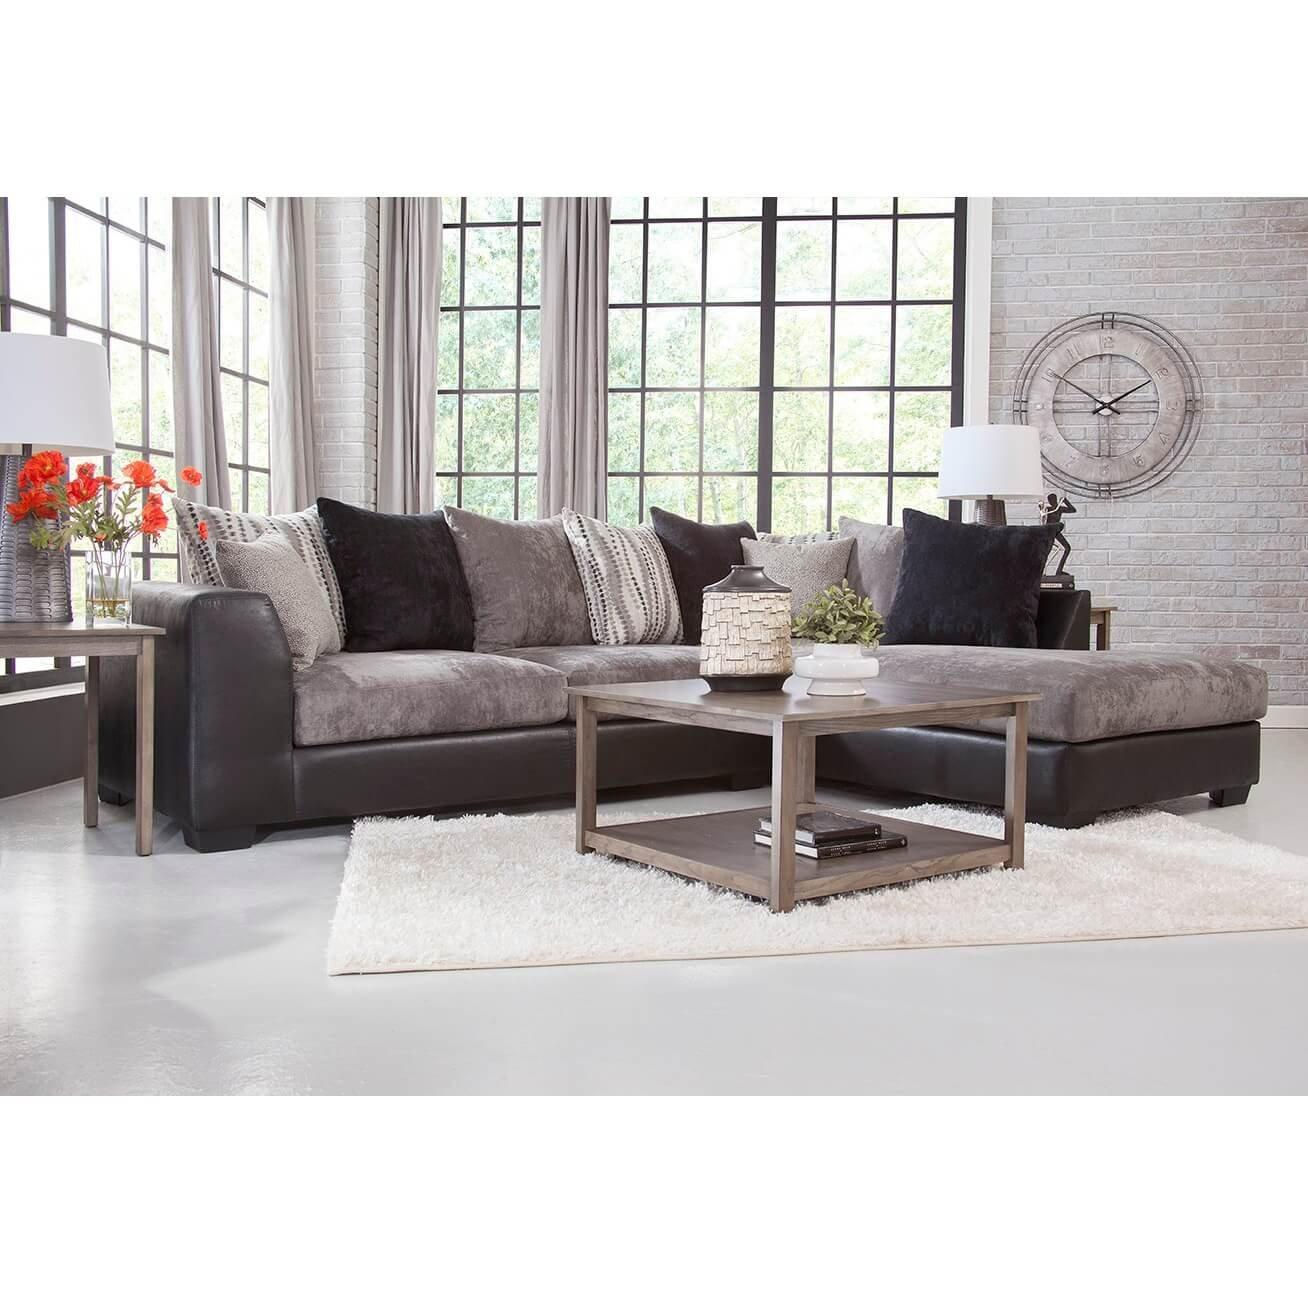 7 piece jamal chaise sofa sectional living room collection